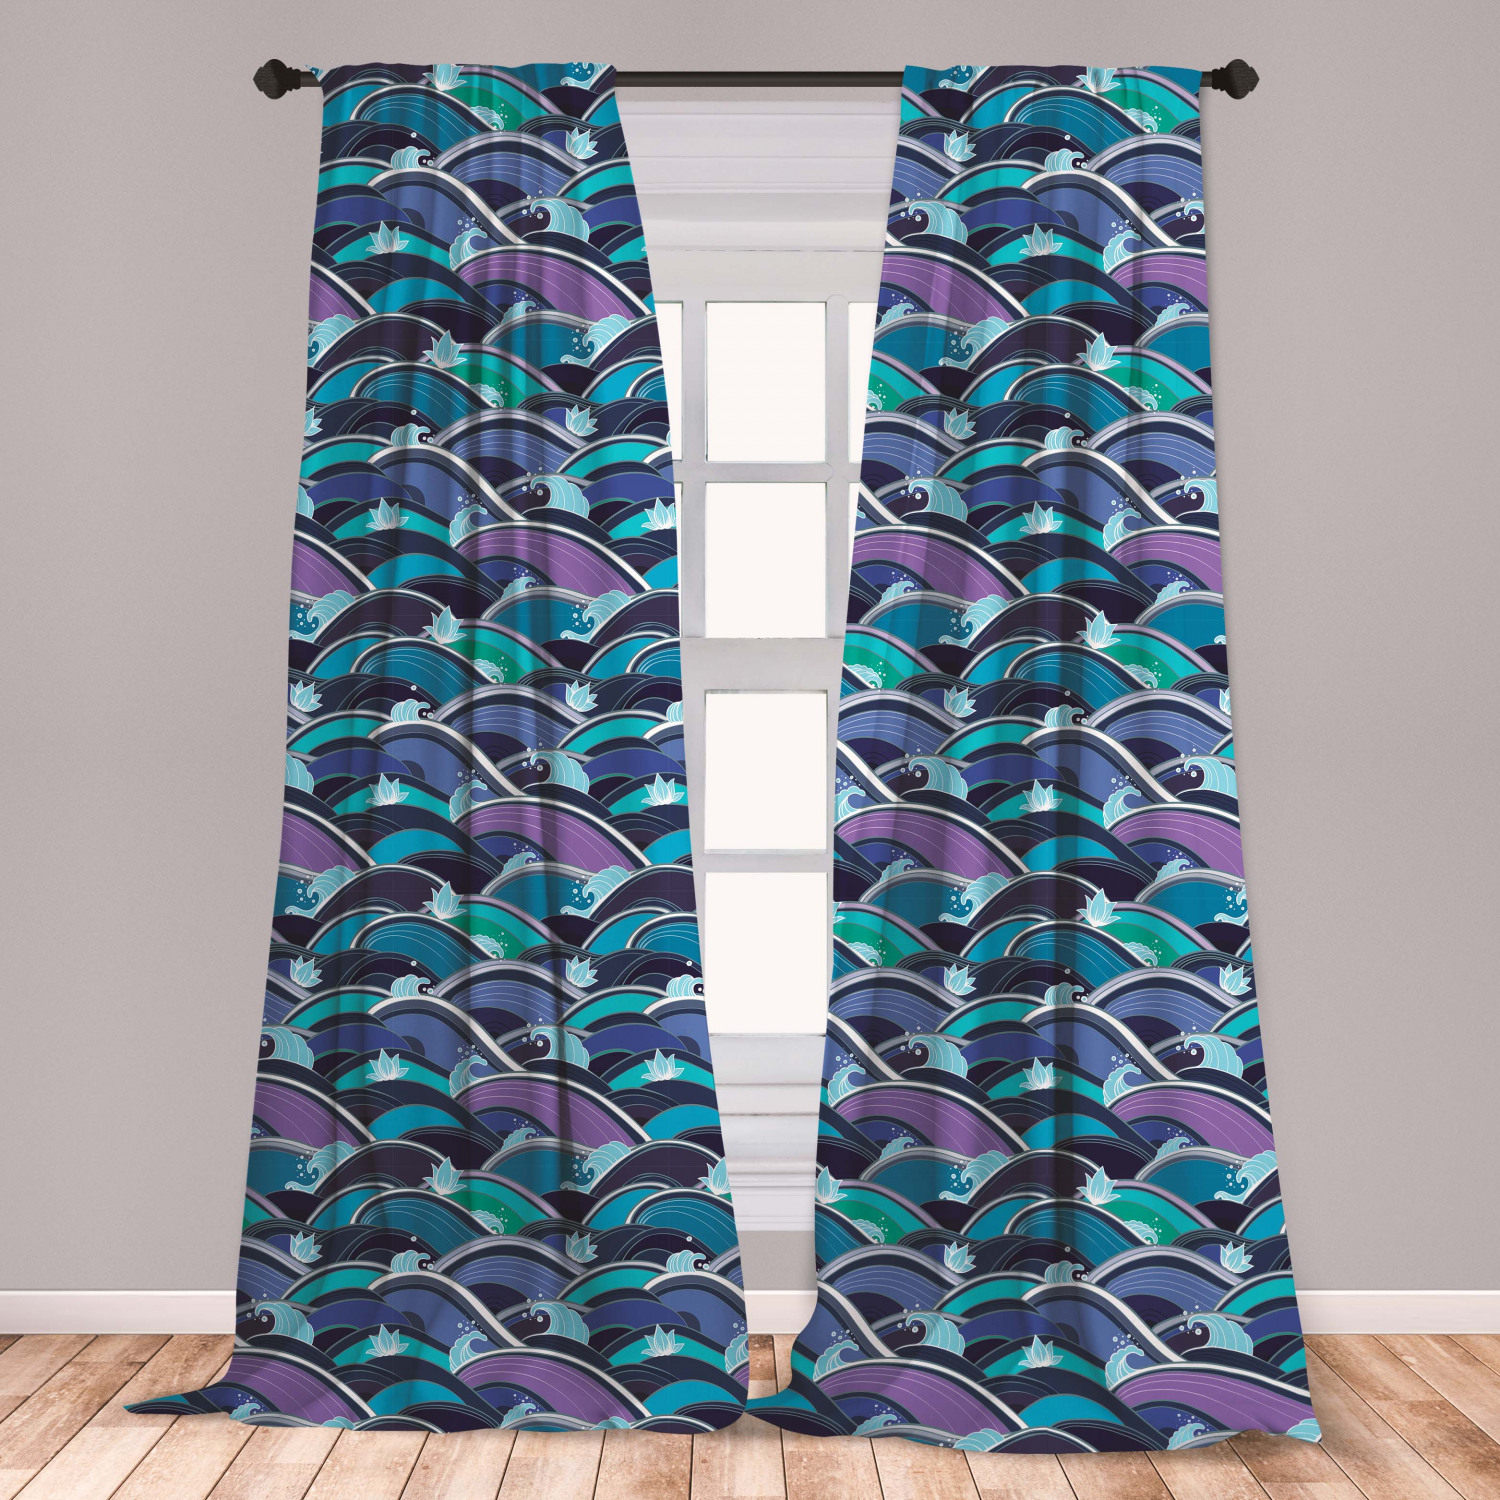 Ocean Curtains 2 Panels Set, Waves Of The Sea With Lotus